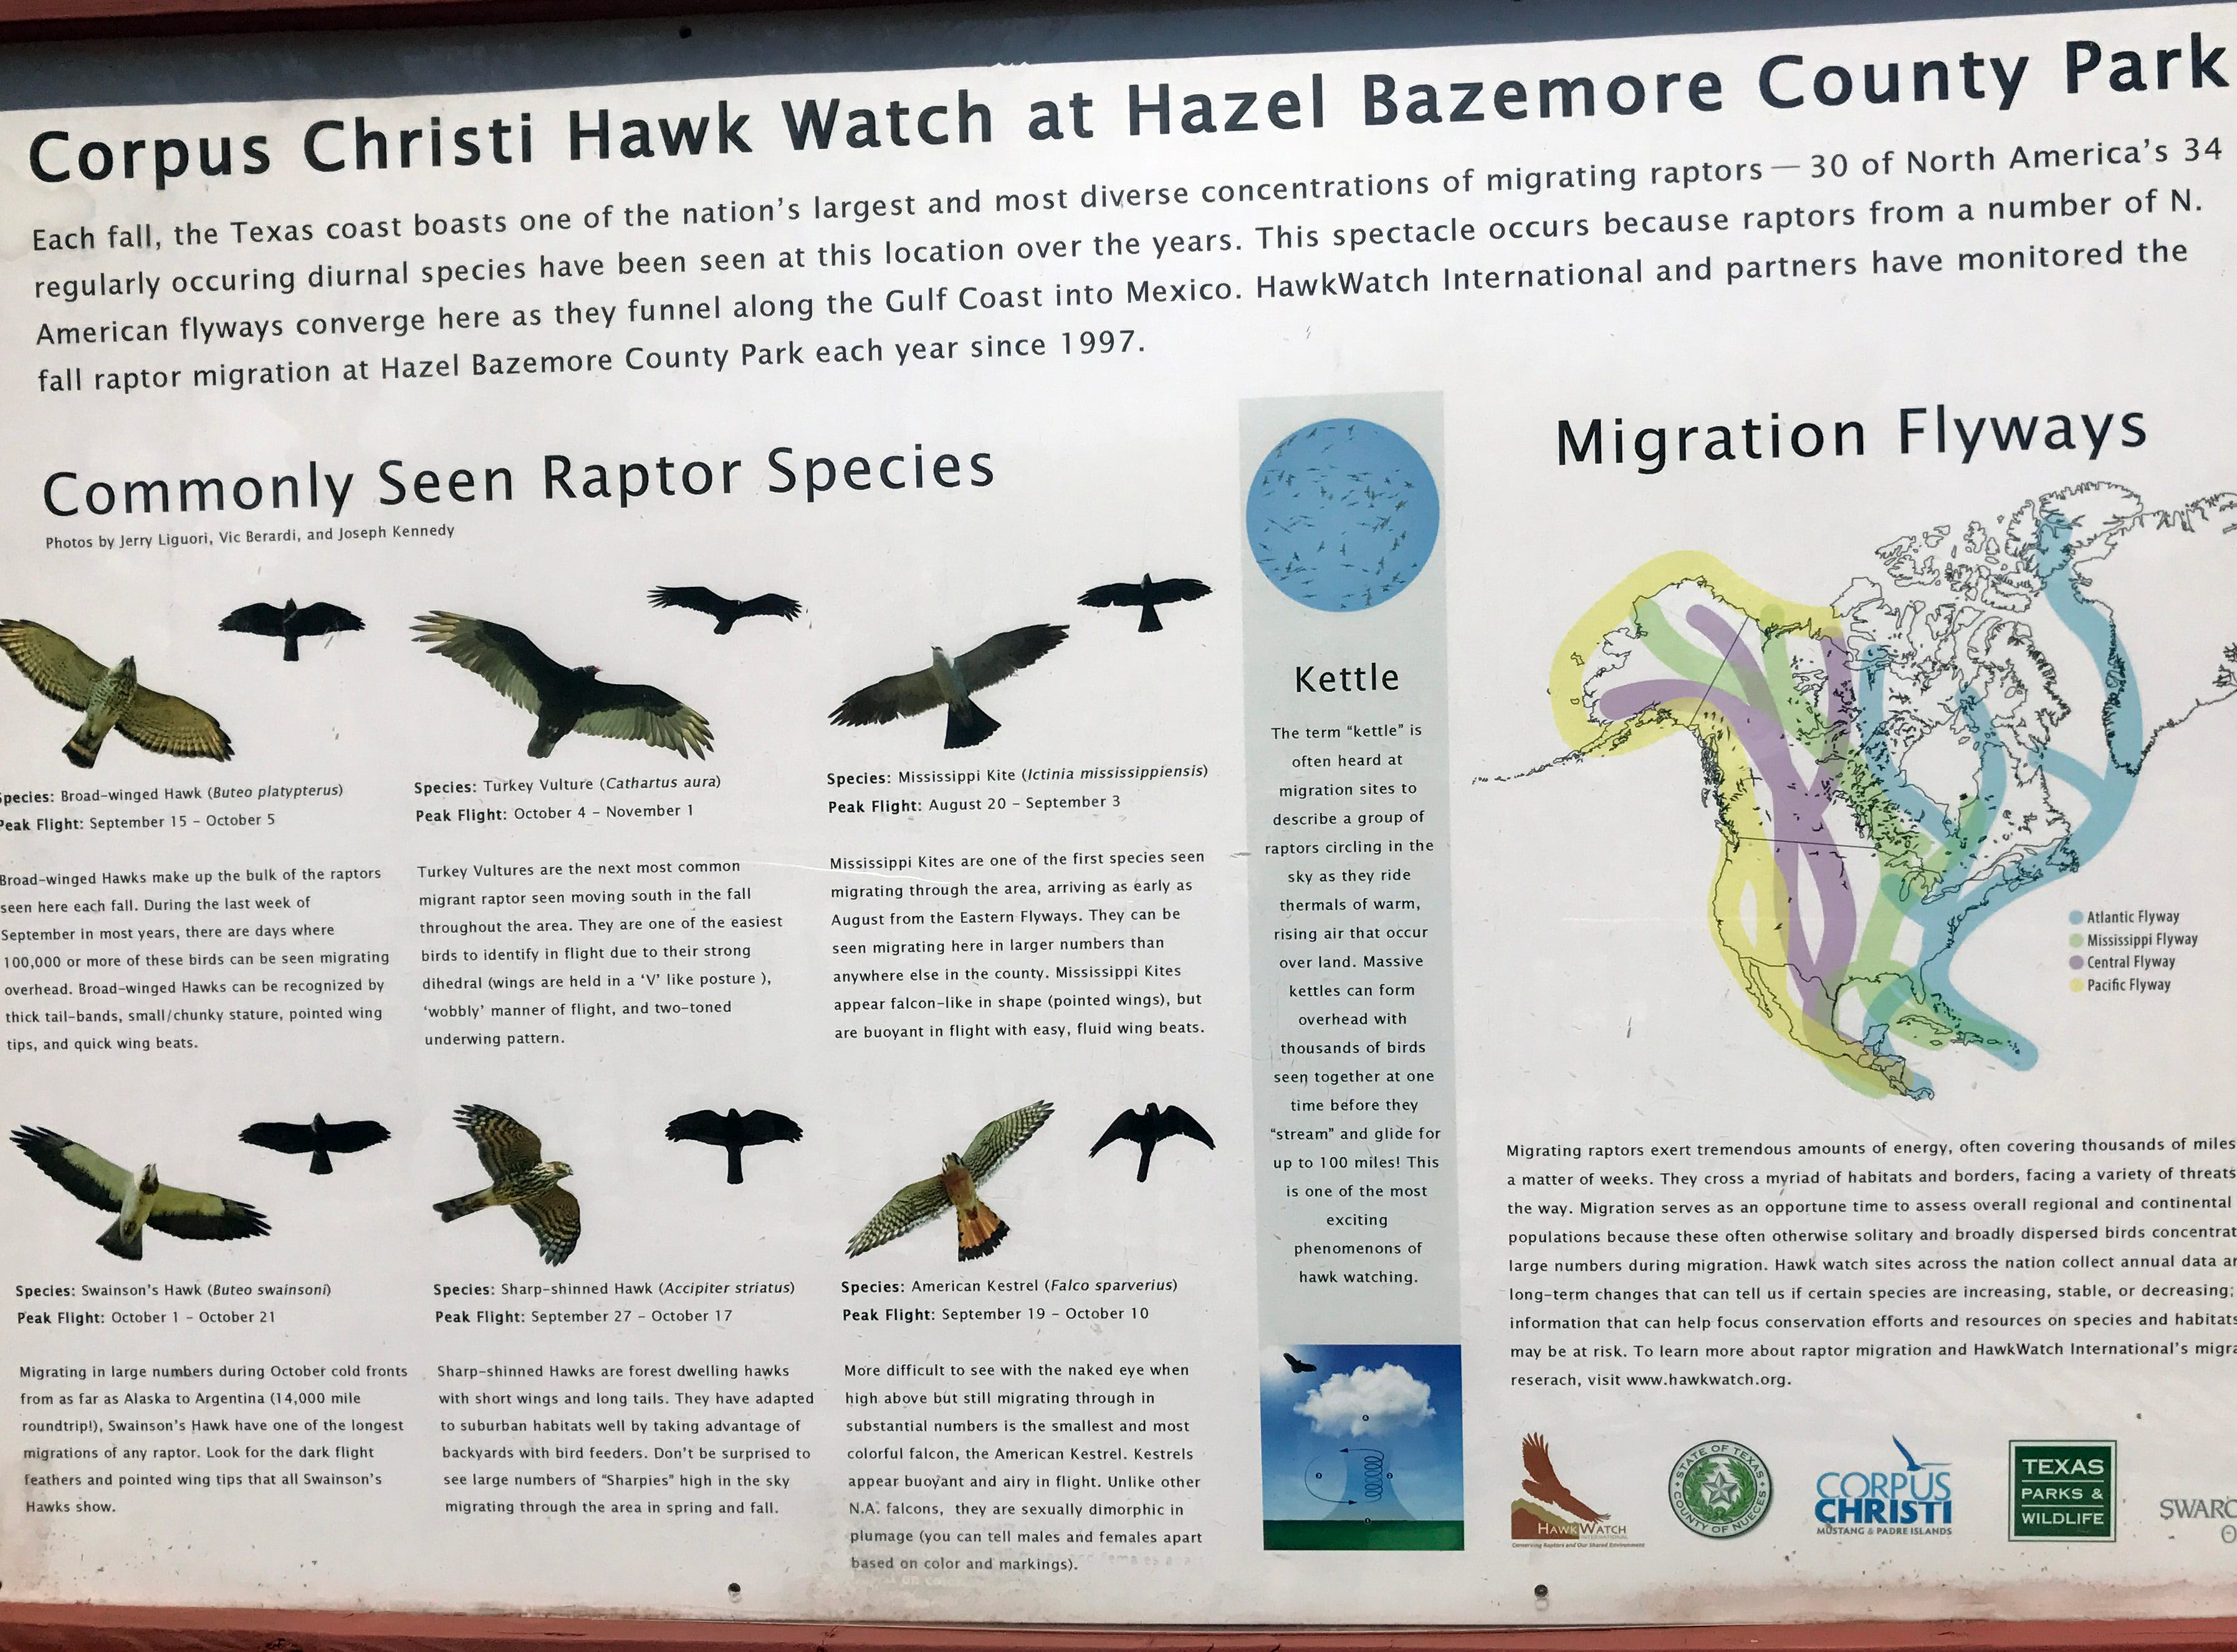 This interpretive sign at Hazel Bazemore Park provides insight into hawks and the hawk migration.